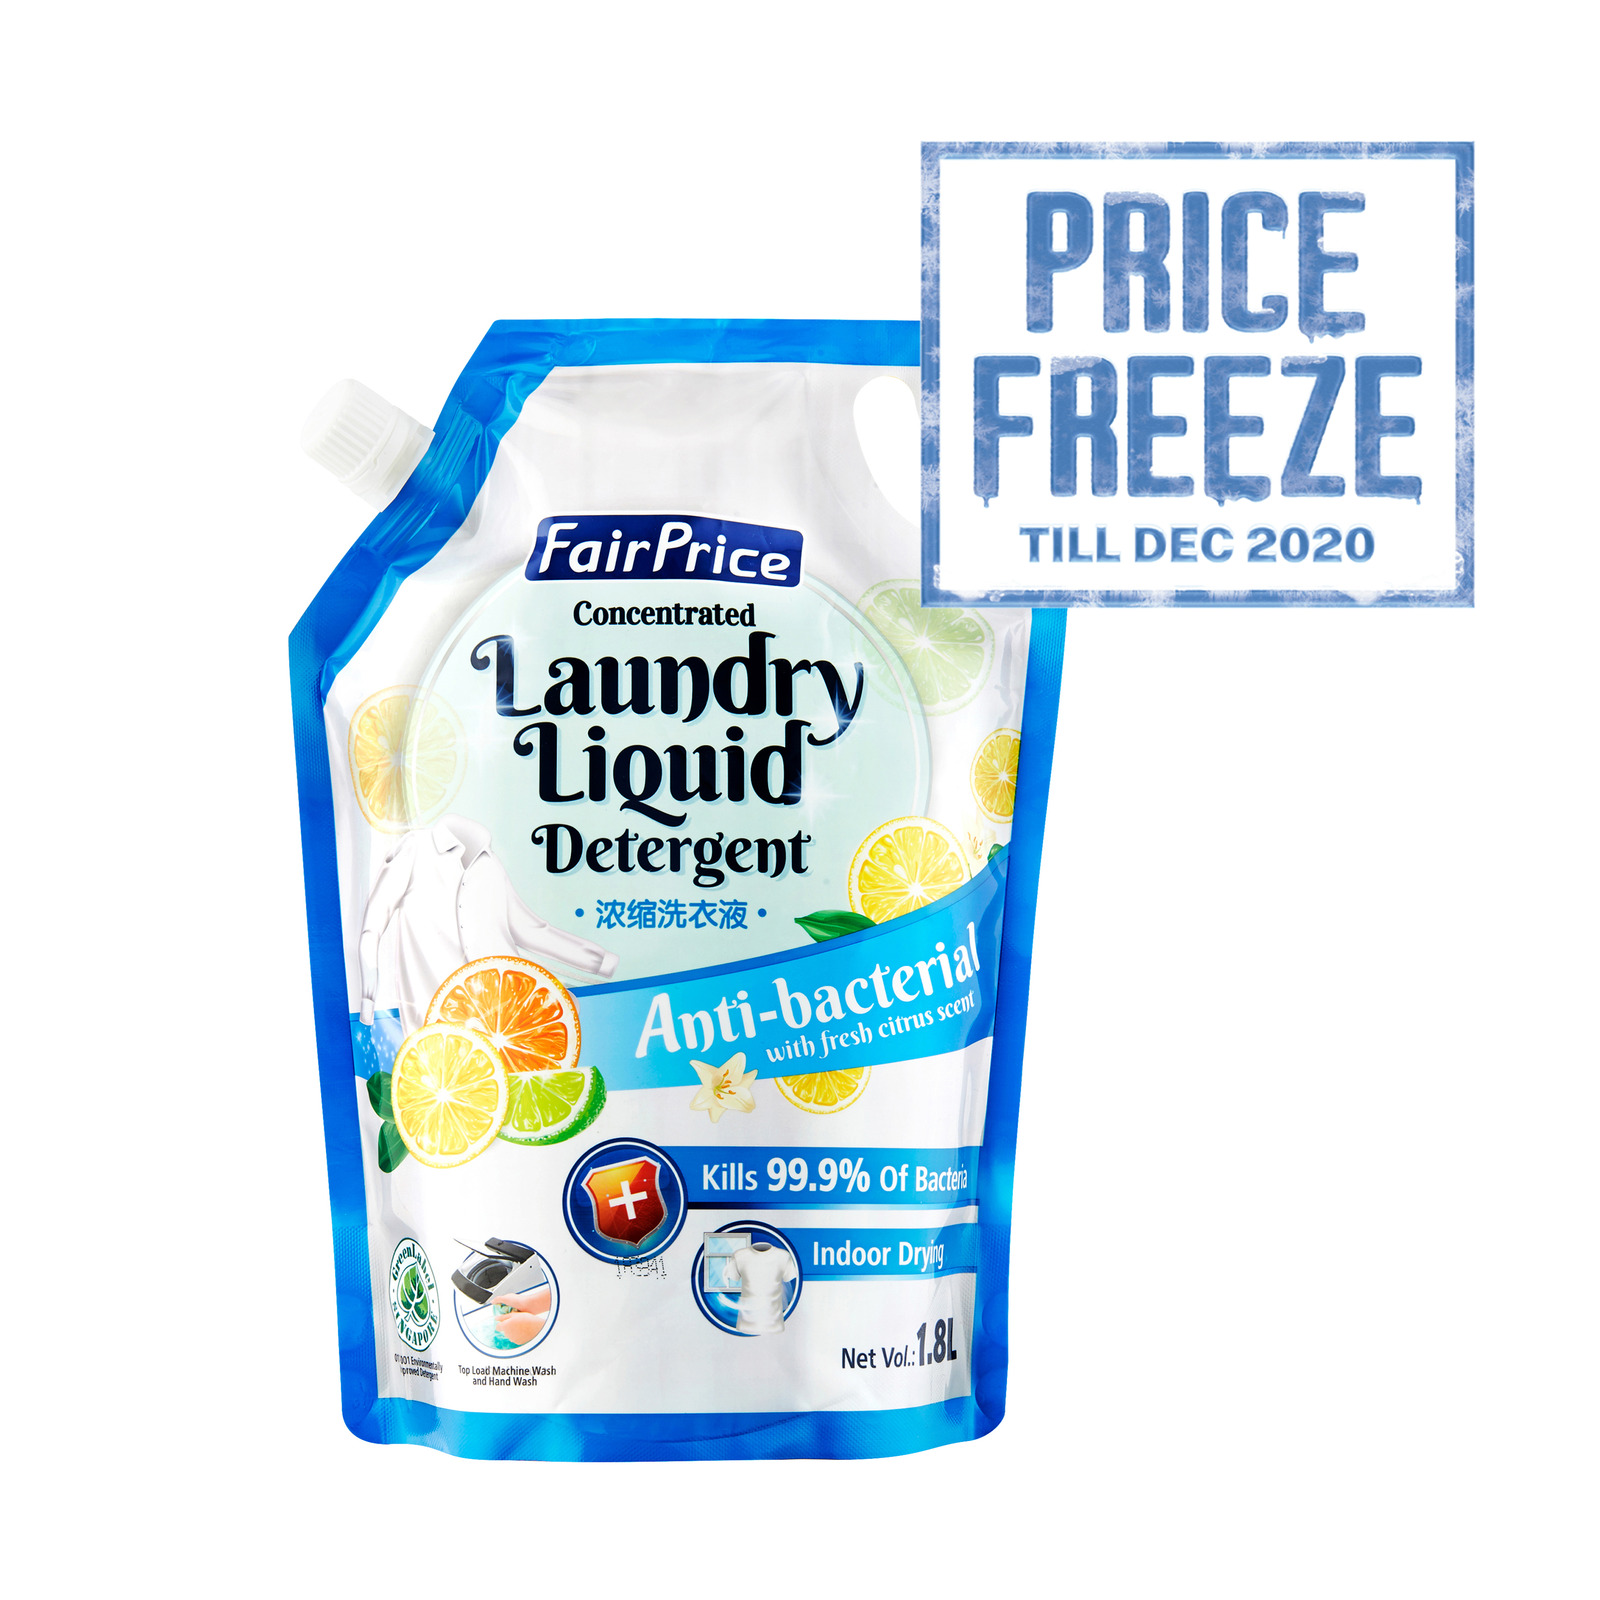 FairPrice Laundry Liquid Detergent Refill - Anti-Bacterial